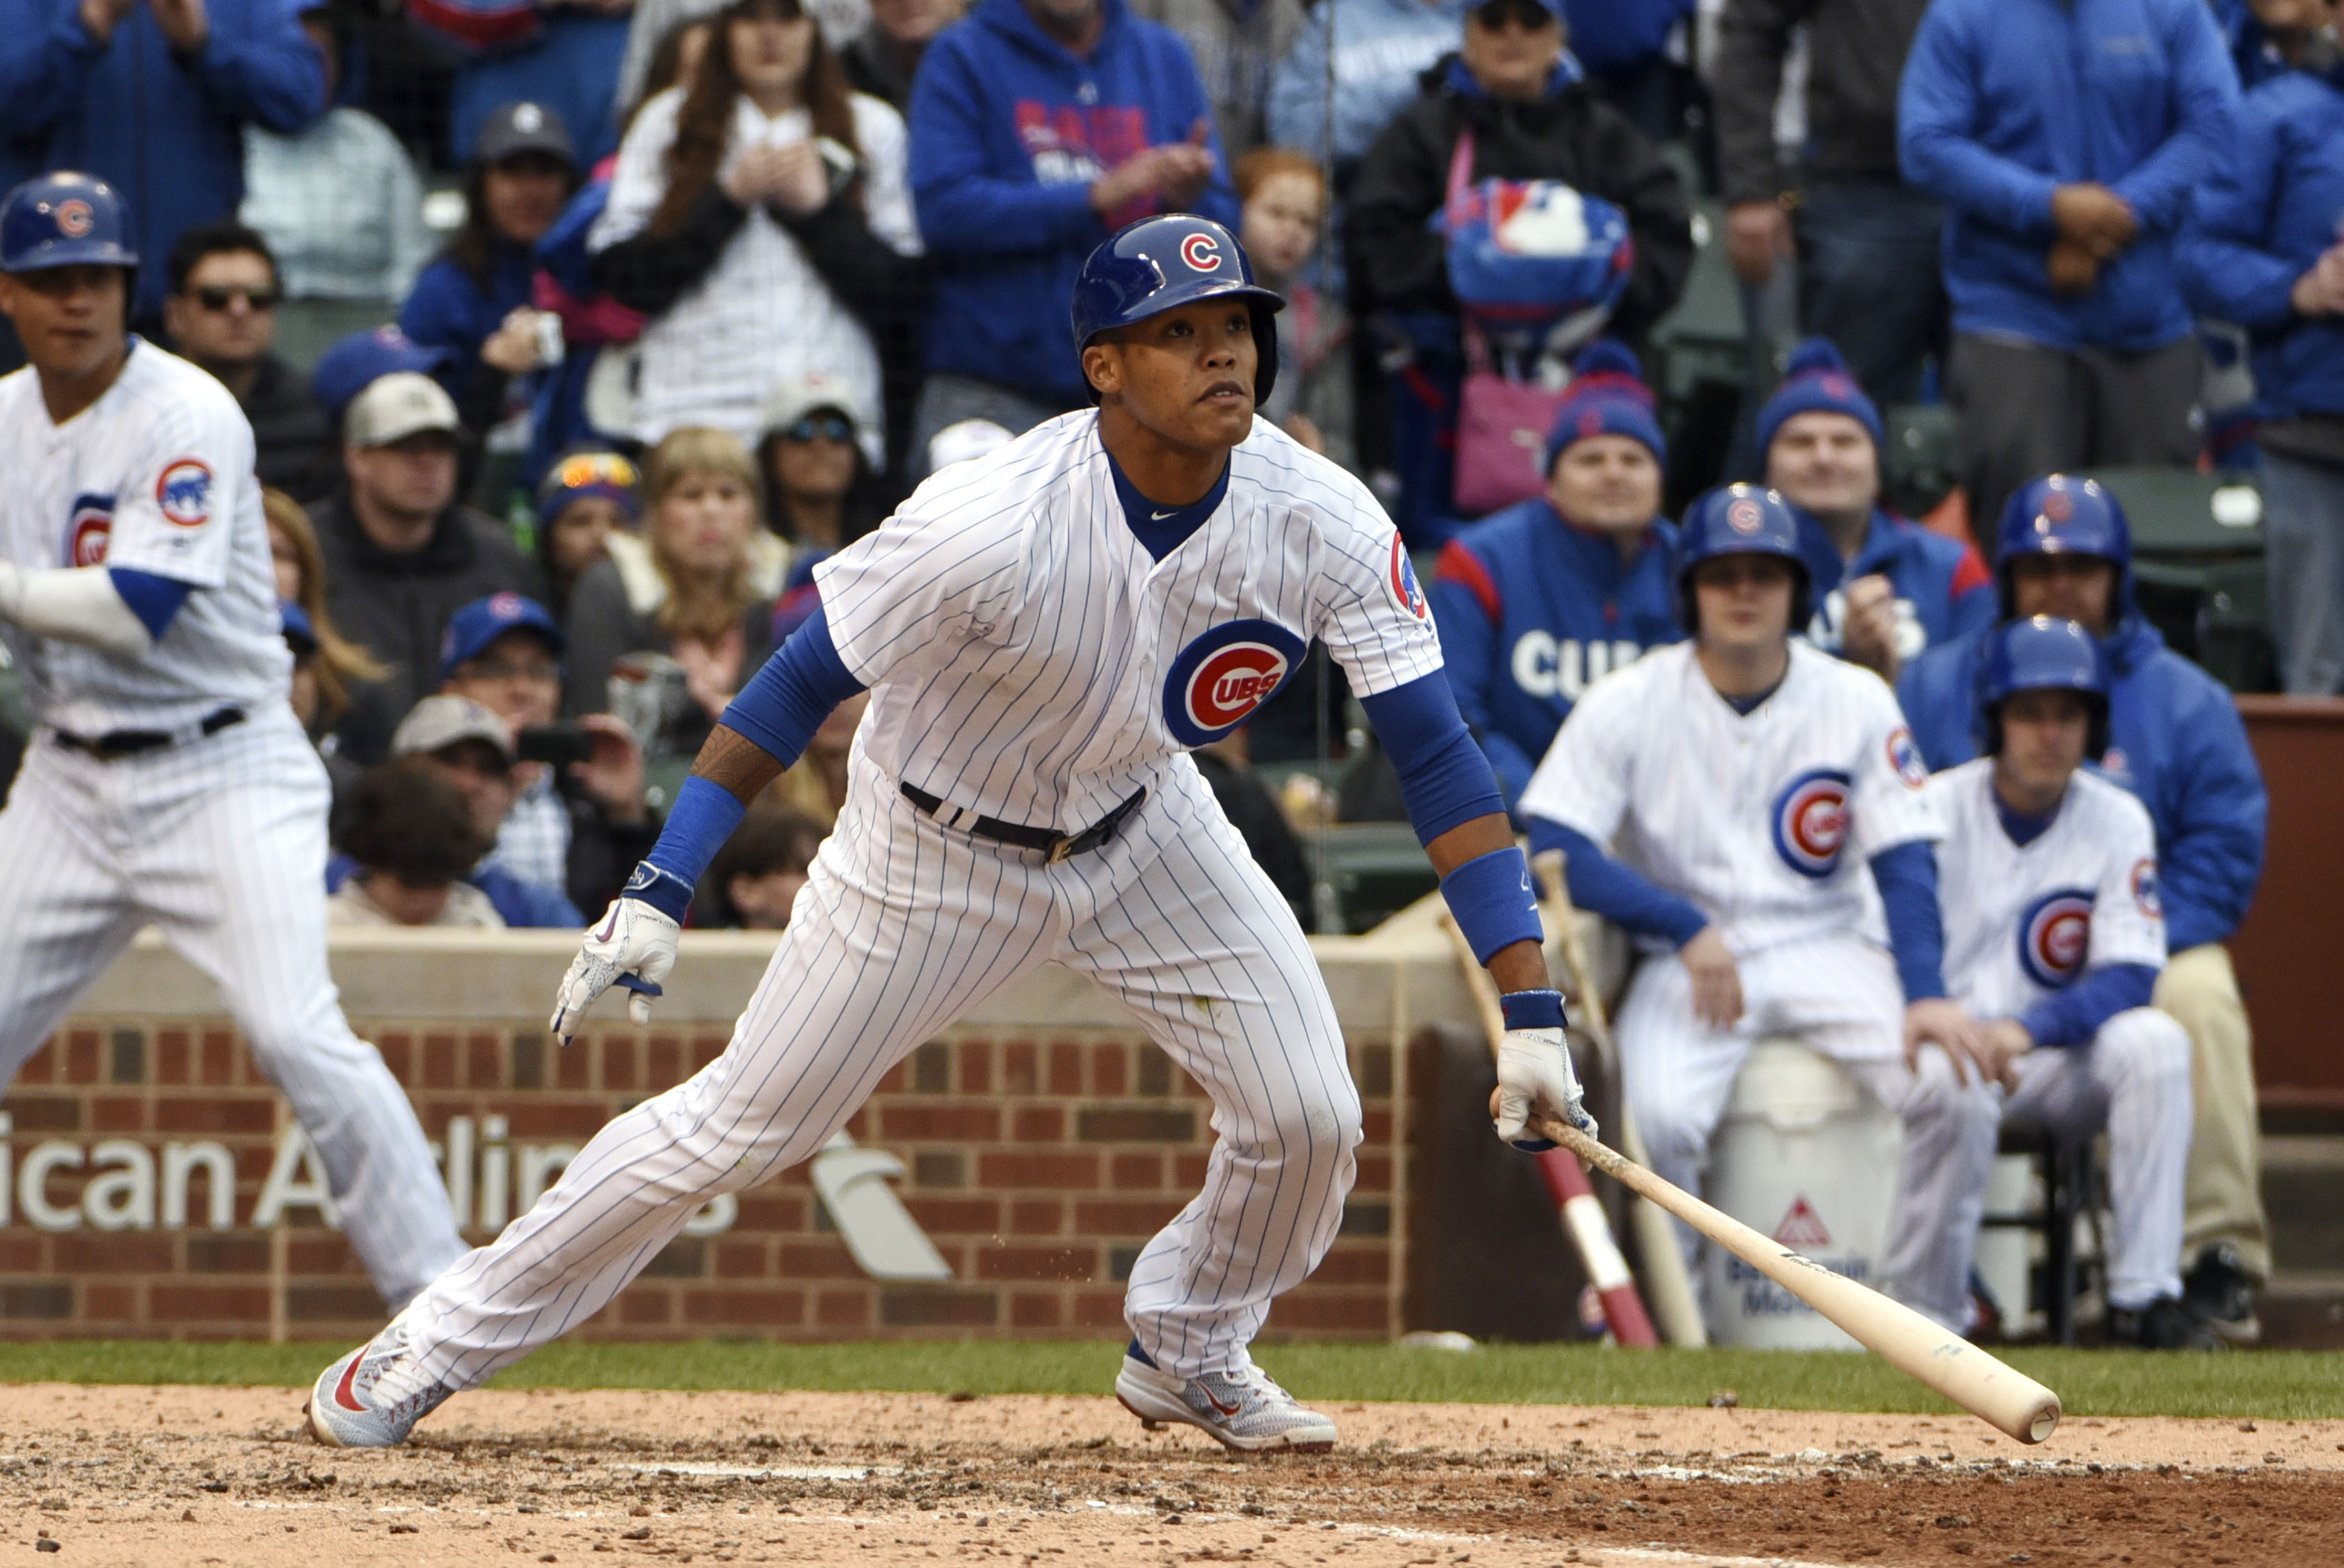 10020373-mlb-milwaukee-brewers-at-chicago-cubs